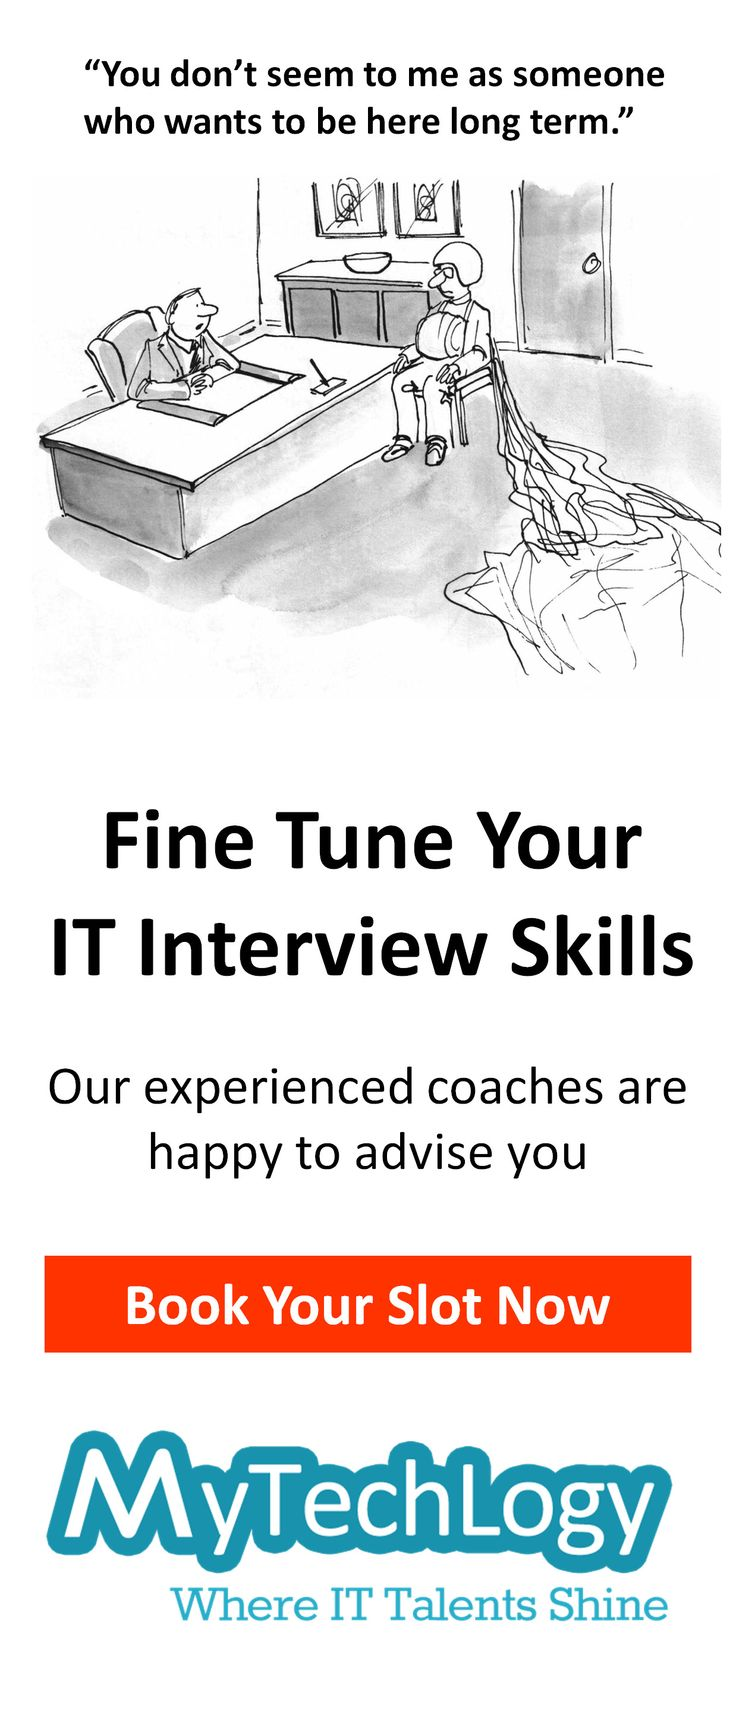 Fine tune your IT interview skills and consult for any market information about organizations within financial services & insurance industry in Singapore. Book your slot now! Visit: http://www.mytechlogy.com/IT-career-development-services/career-coaches/Sandra-Heng/ #bfsi #interview #careeradvice